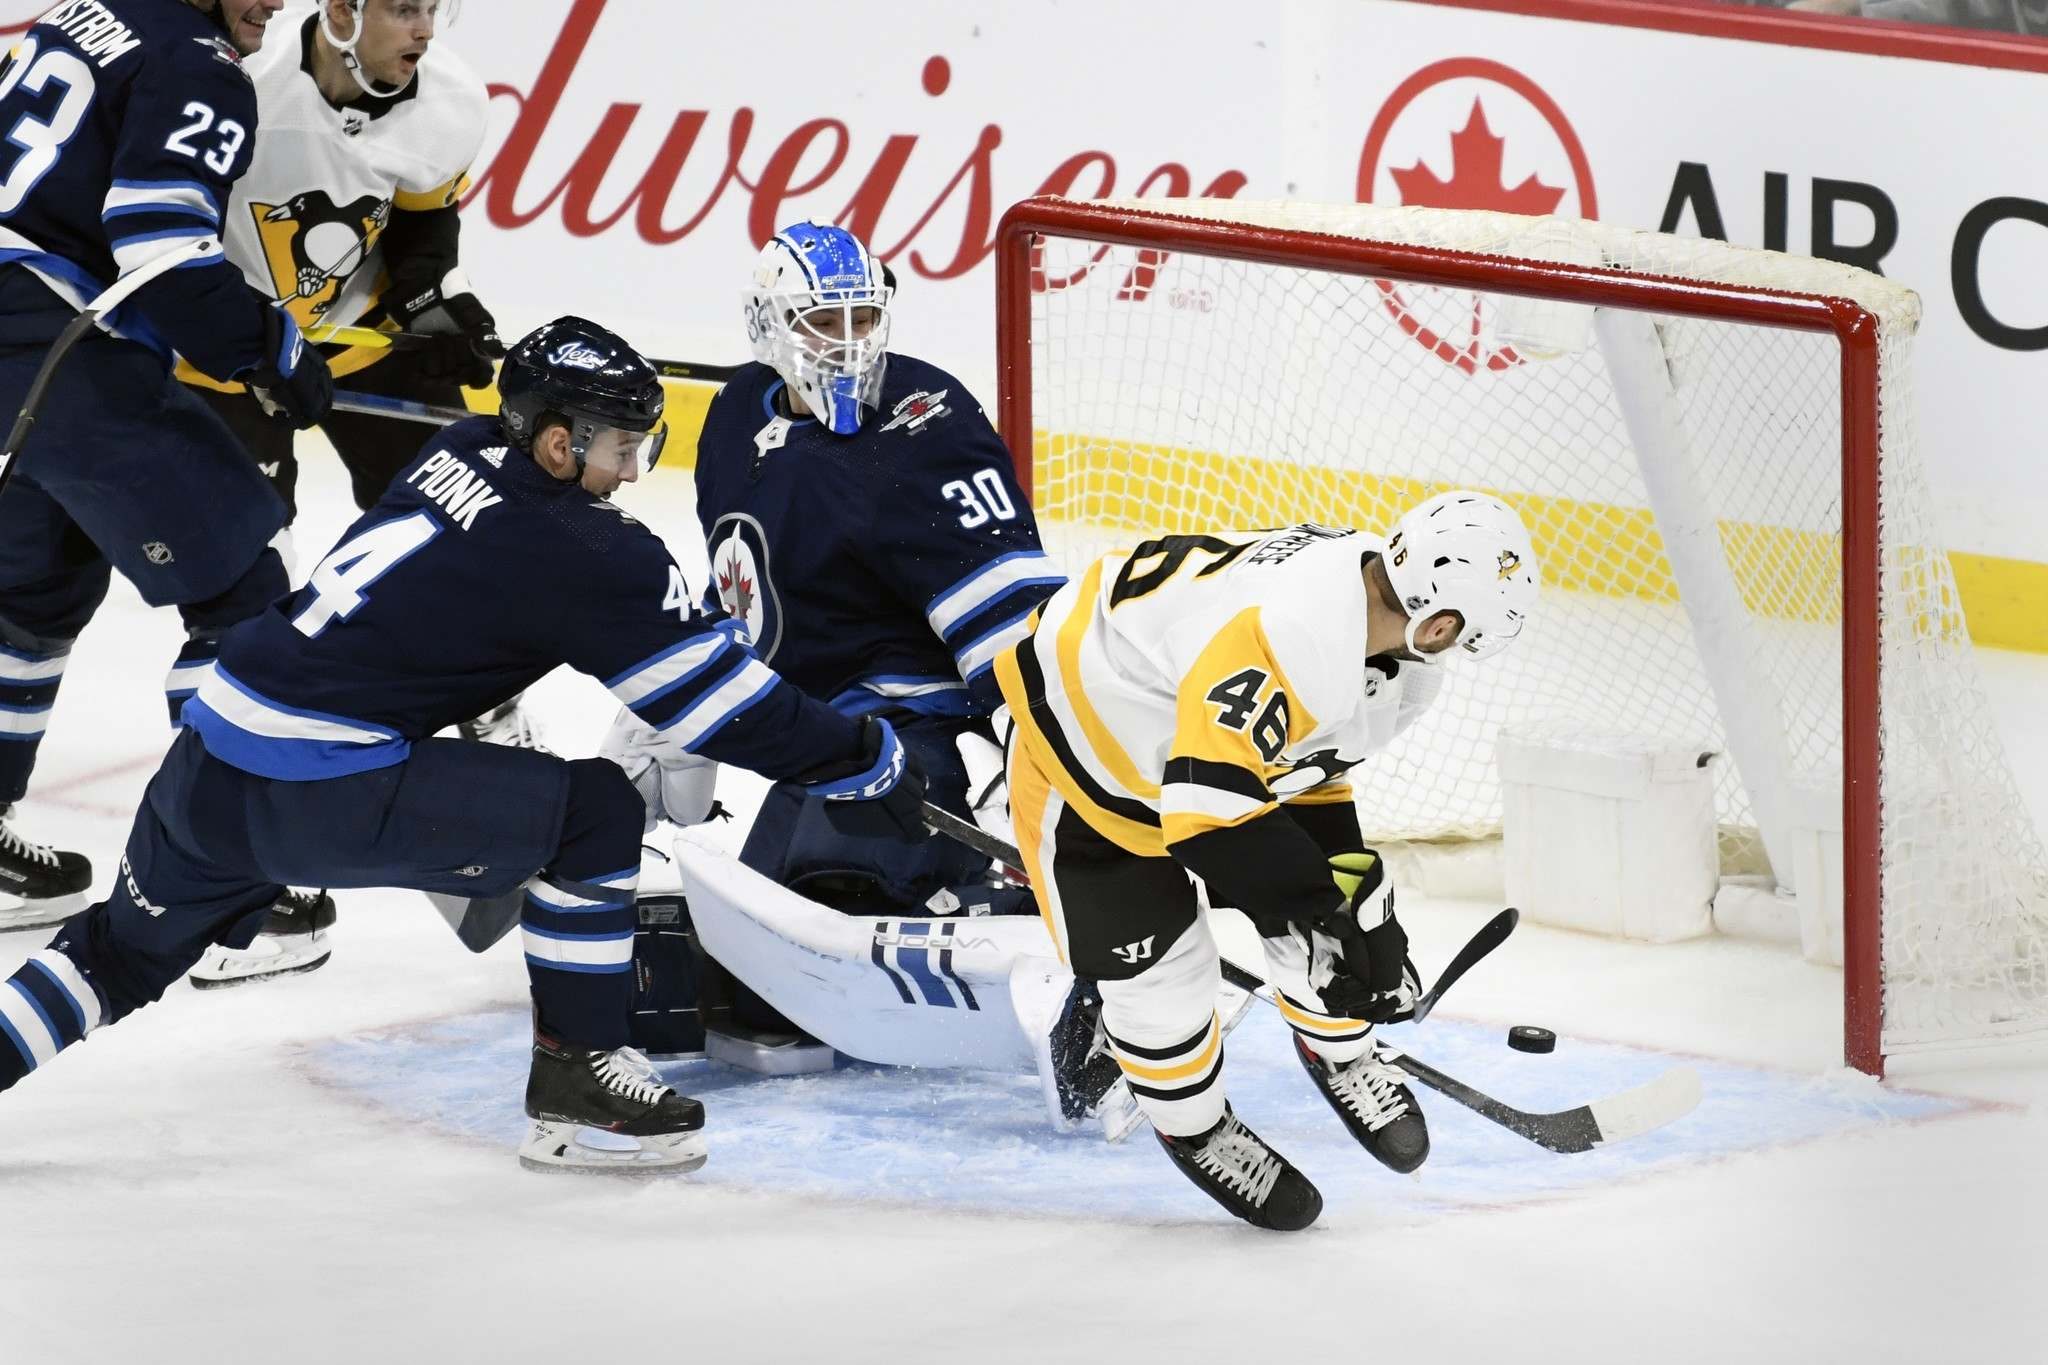 Zach Aston-Reese scores his first of two goals Sunday during the Penguins 7-2 victory over the Jets. (Fred Greenslade / The Canadian Press)</p>